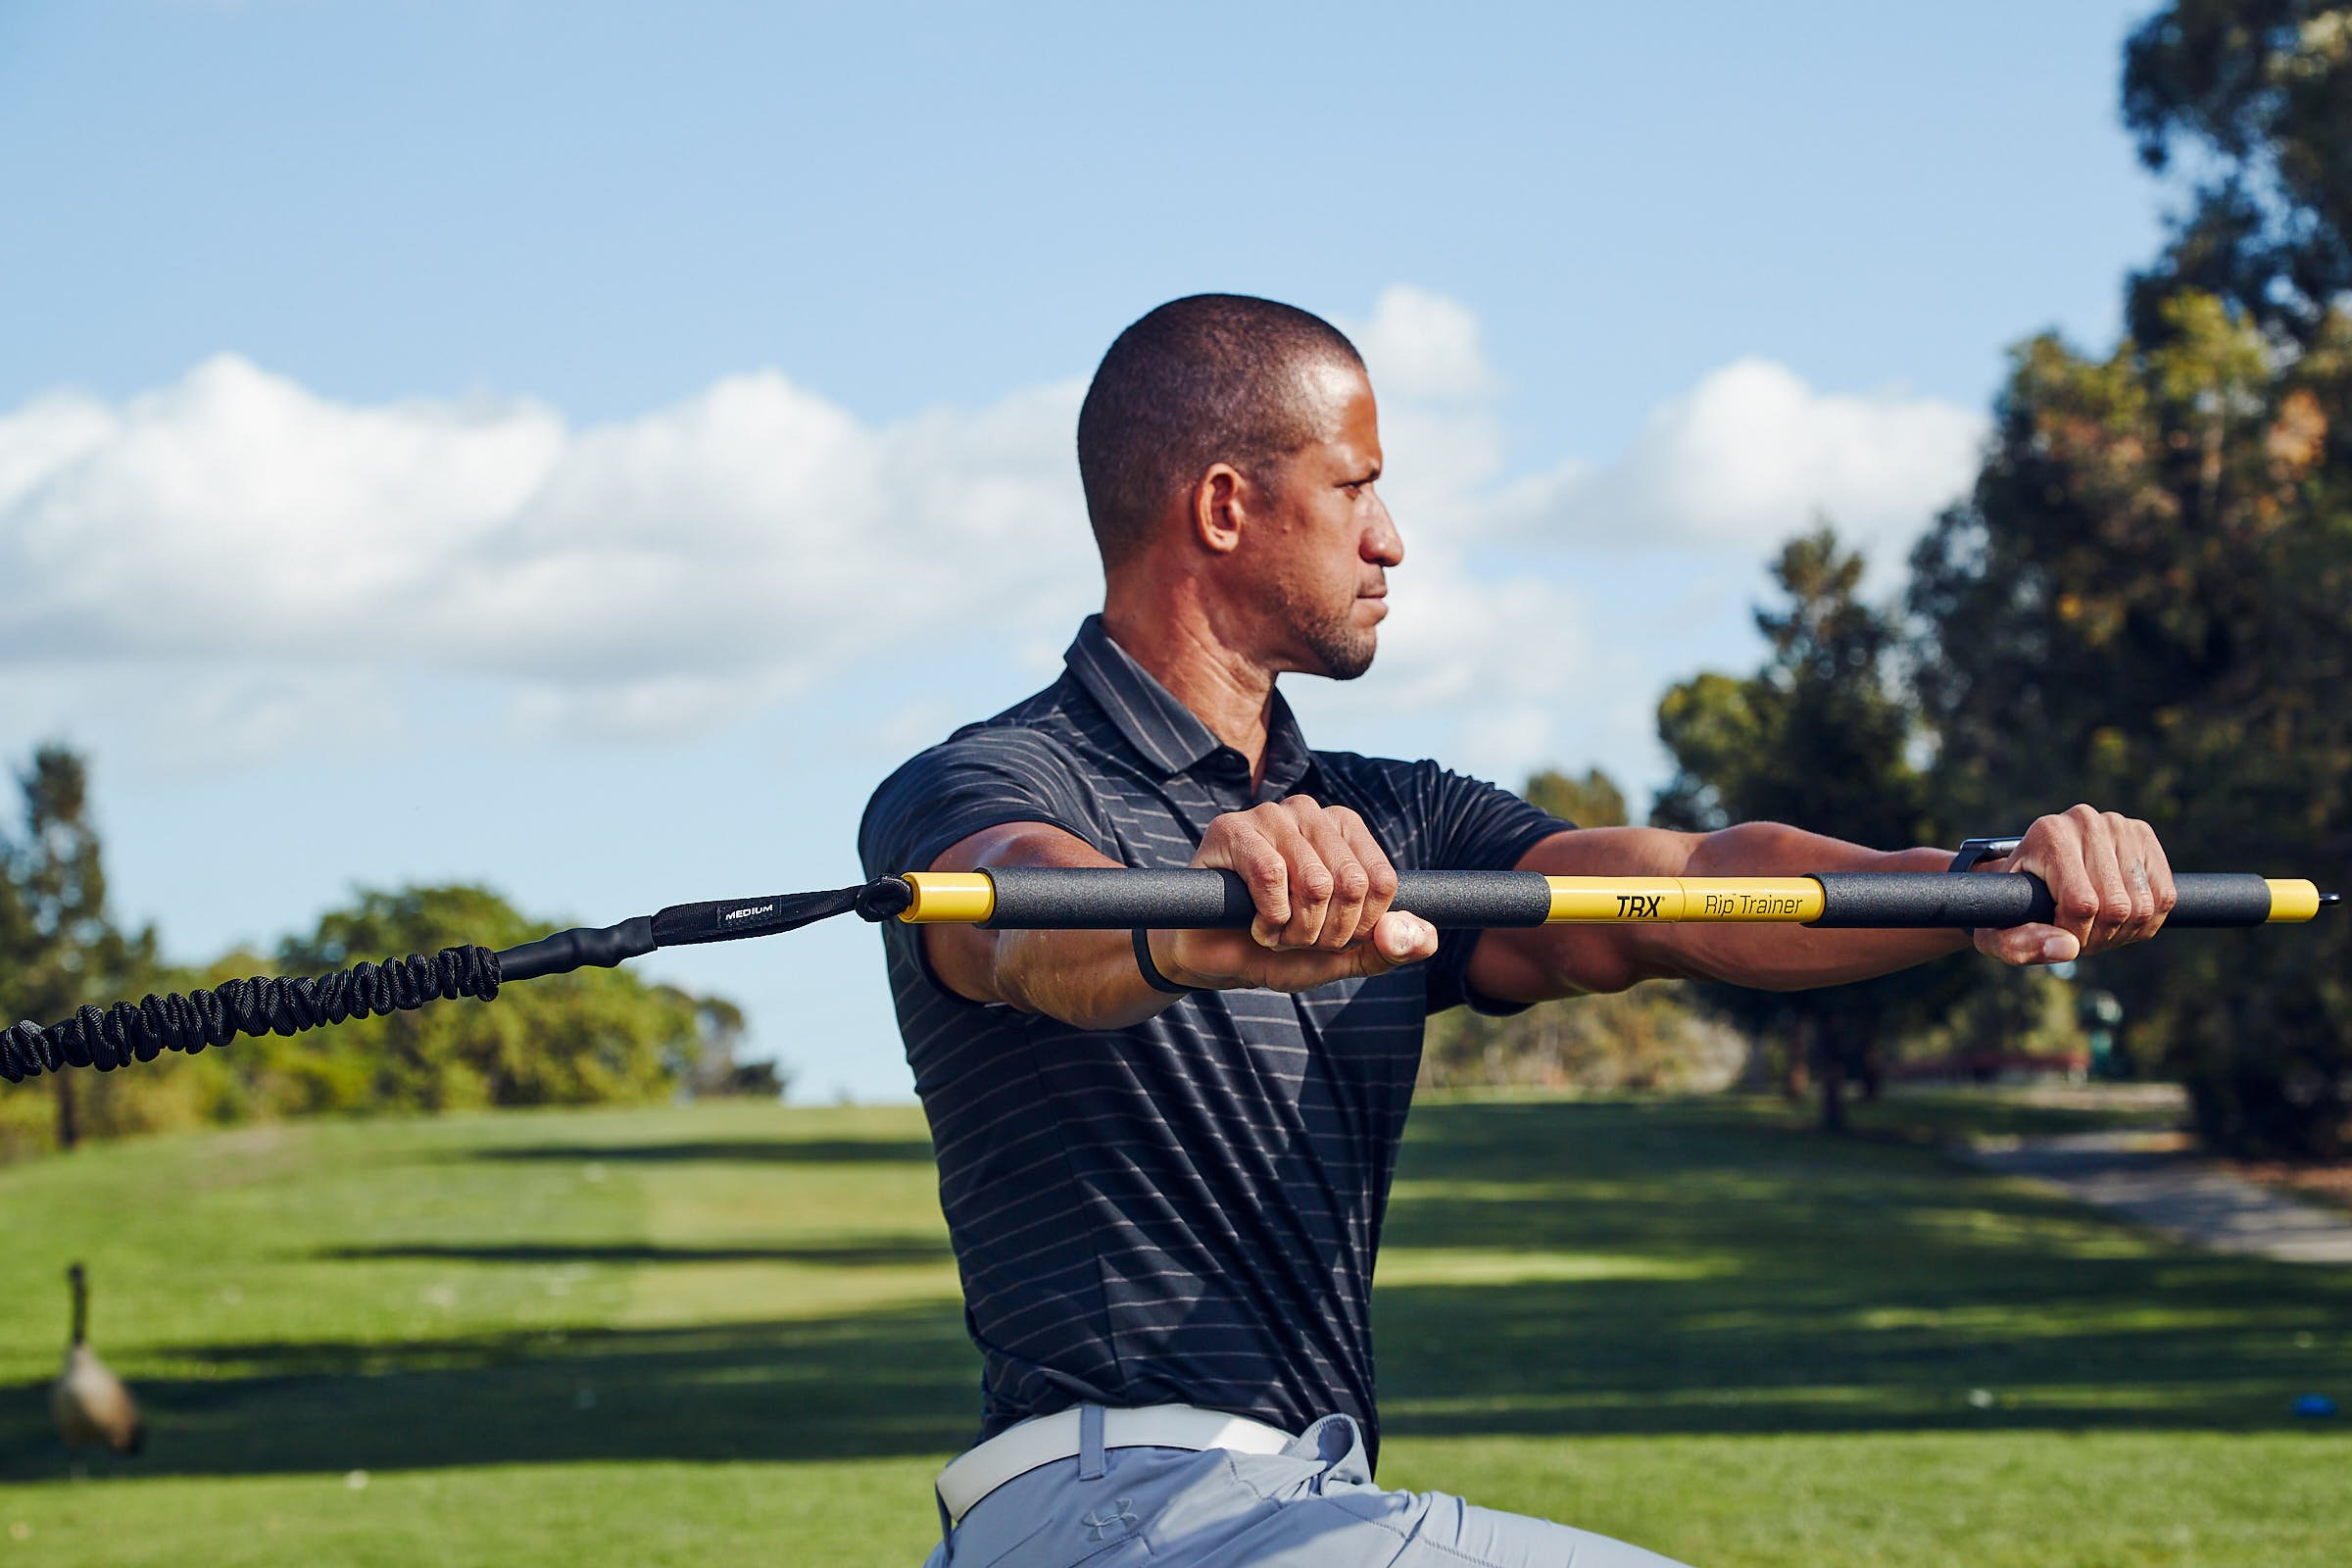 Trevor Anderson completing a TRX Rip Trainer step press lunge with rotation